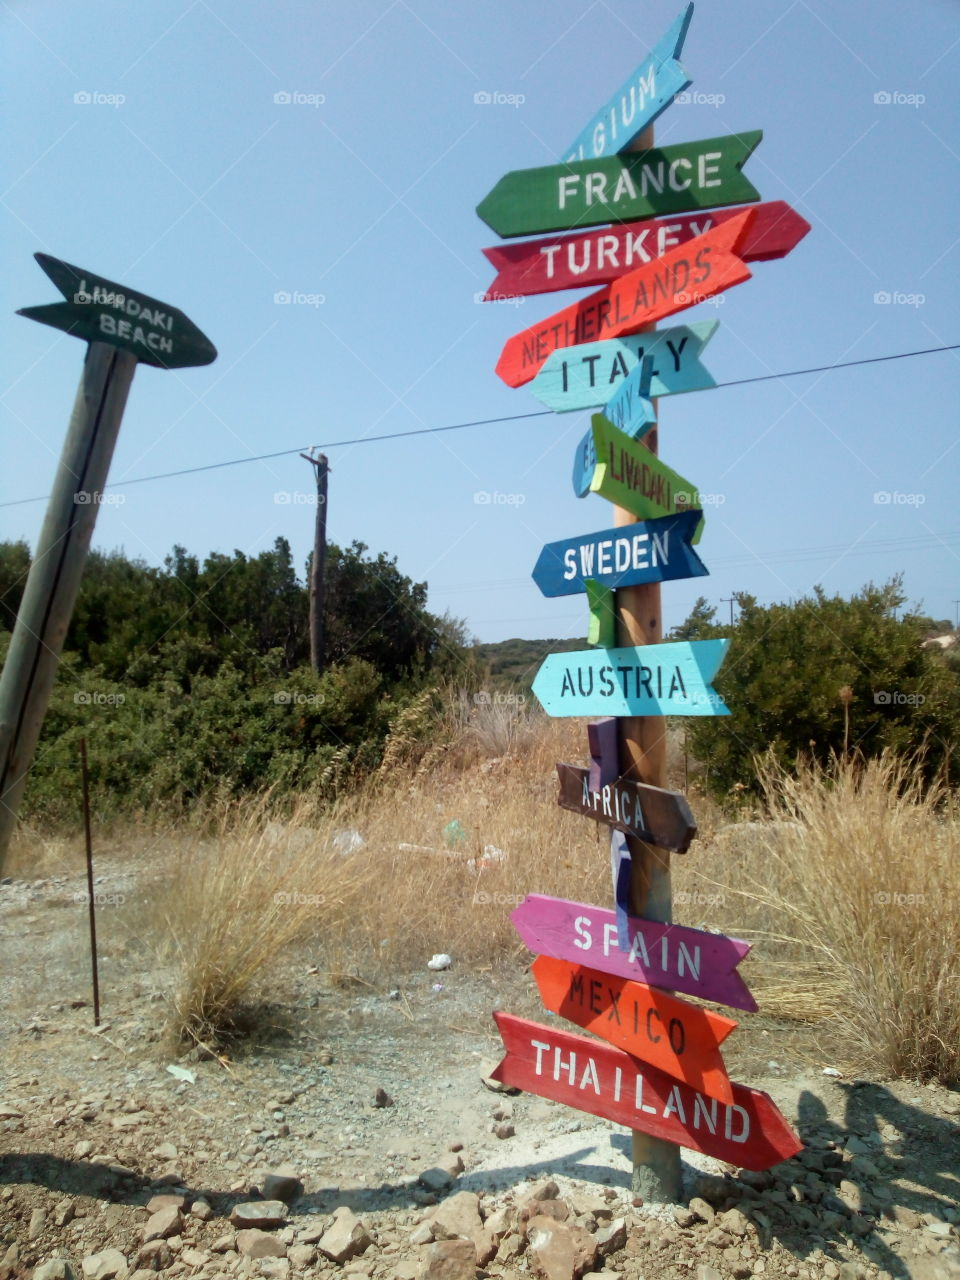 From Samos to the rest of the world